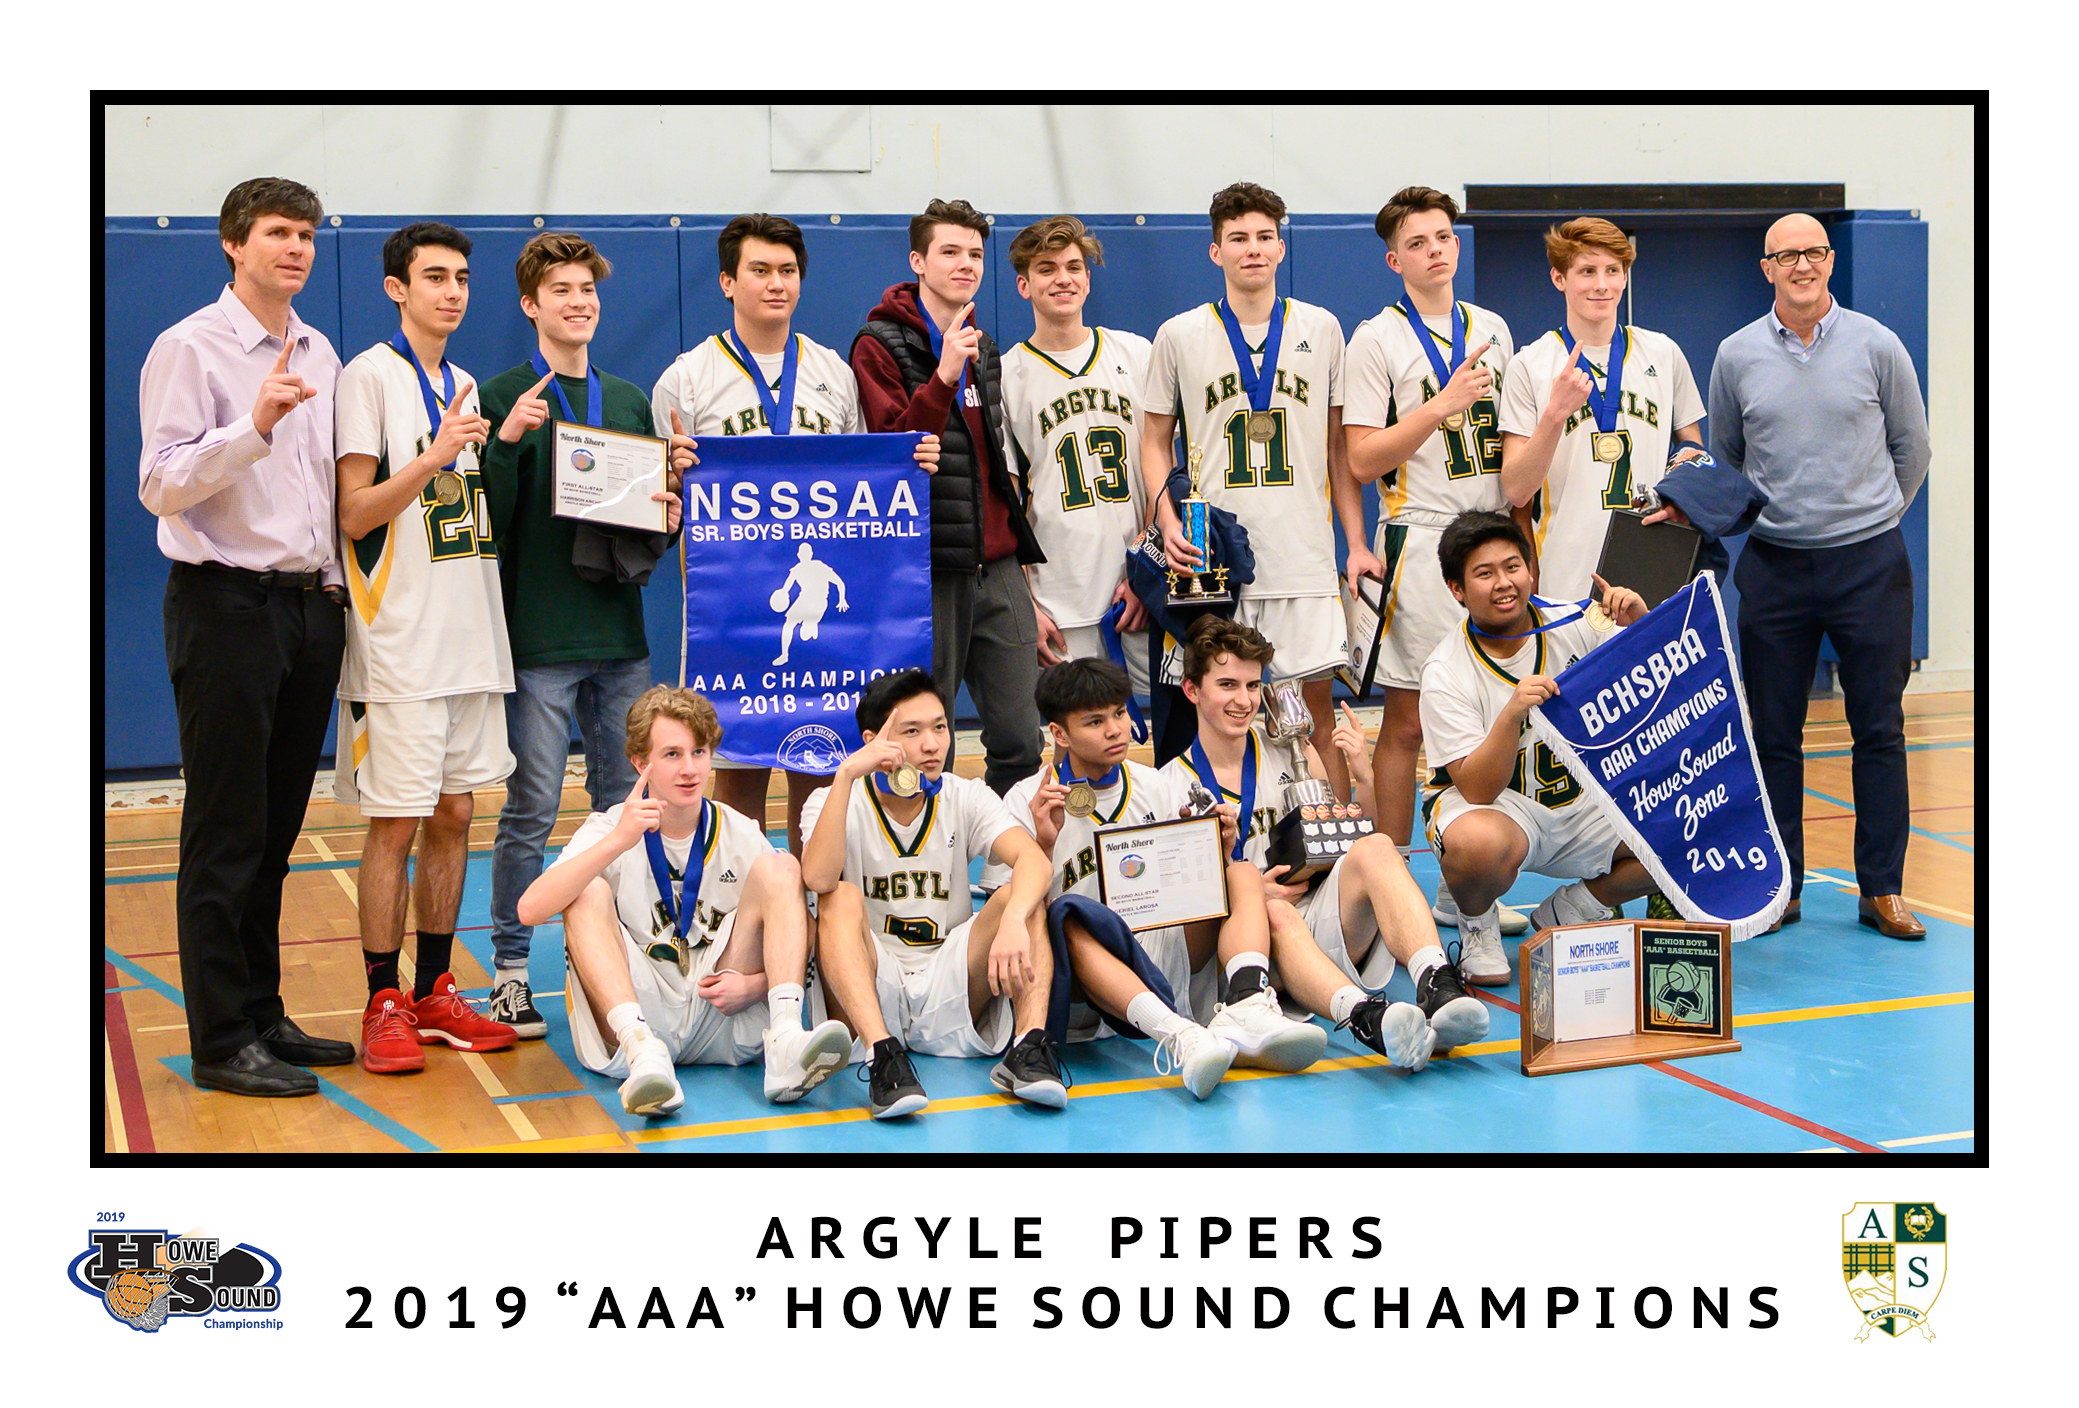 argyle champs w copy.jpg